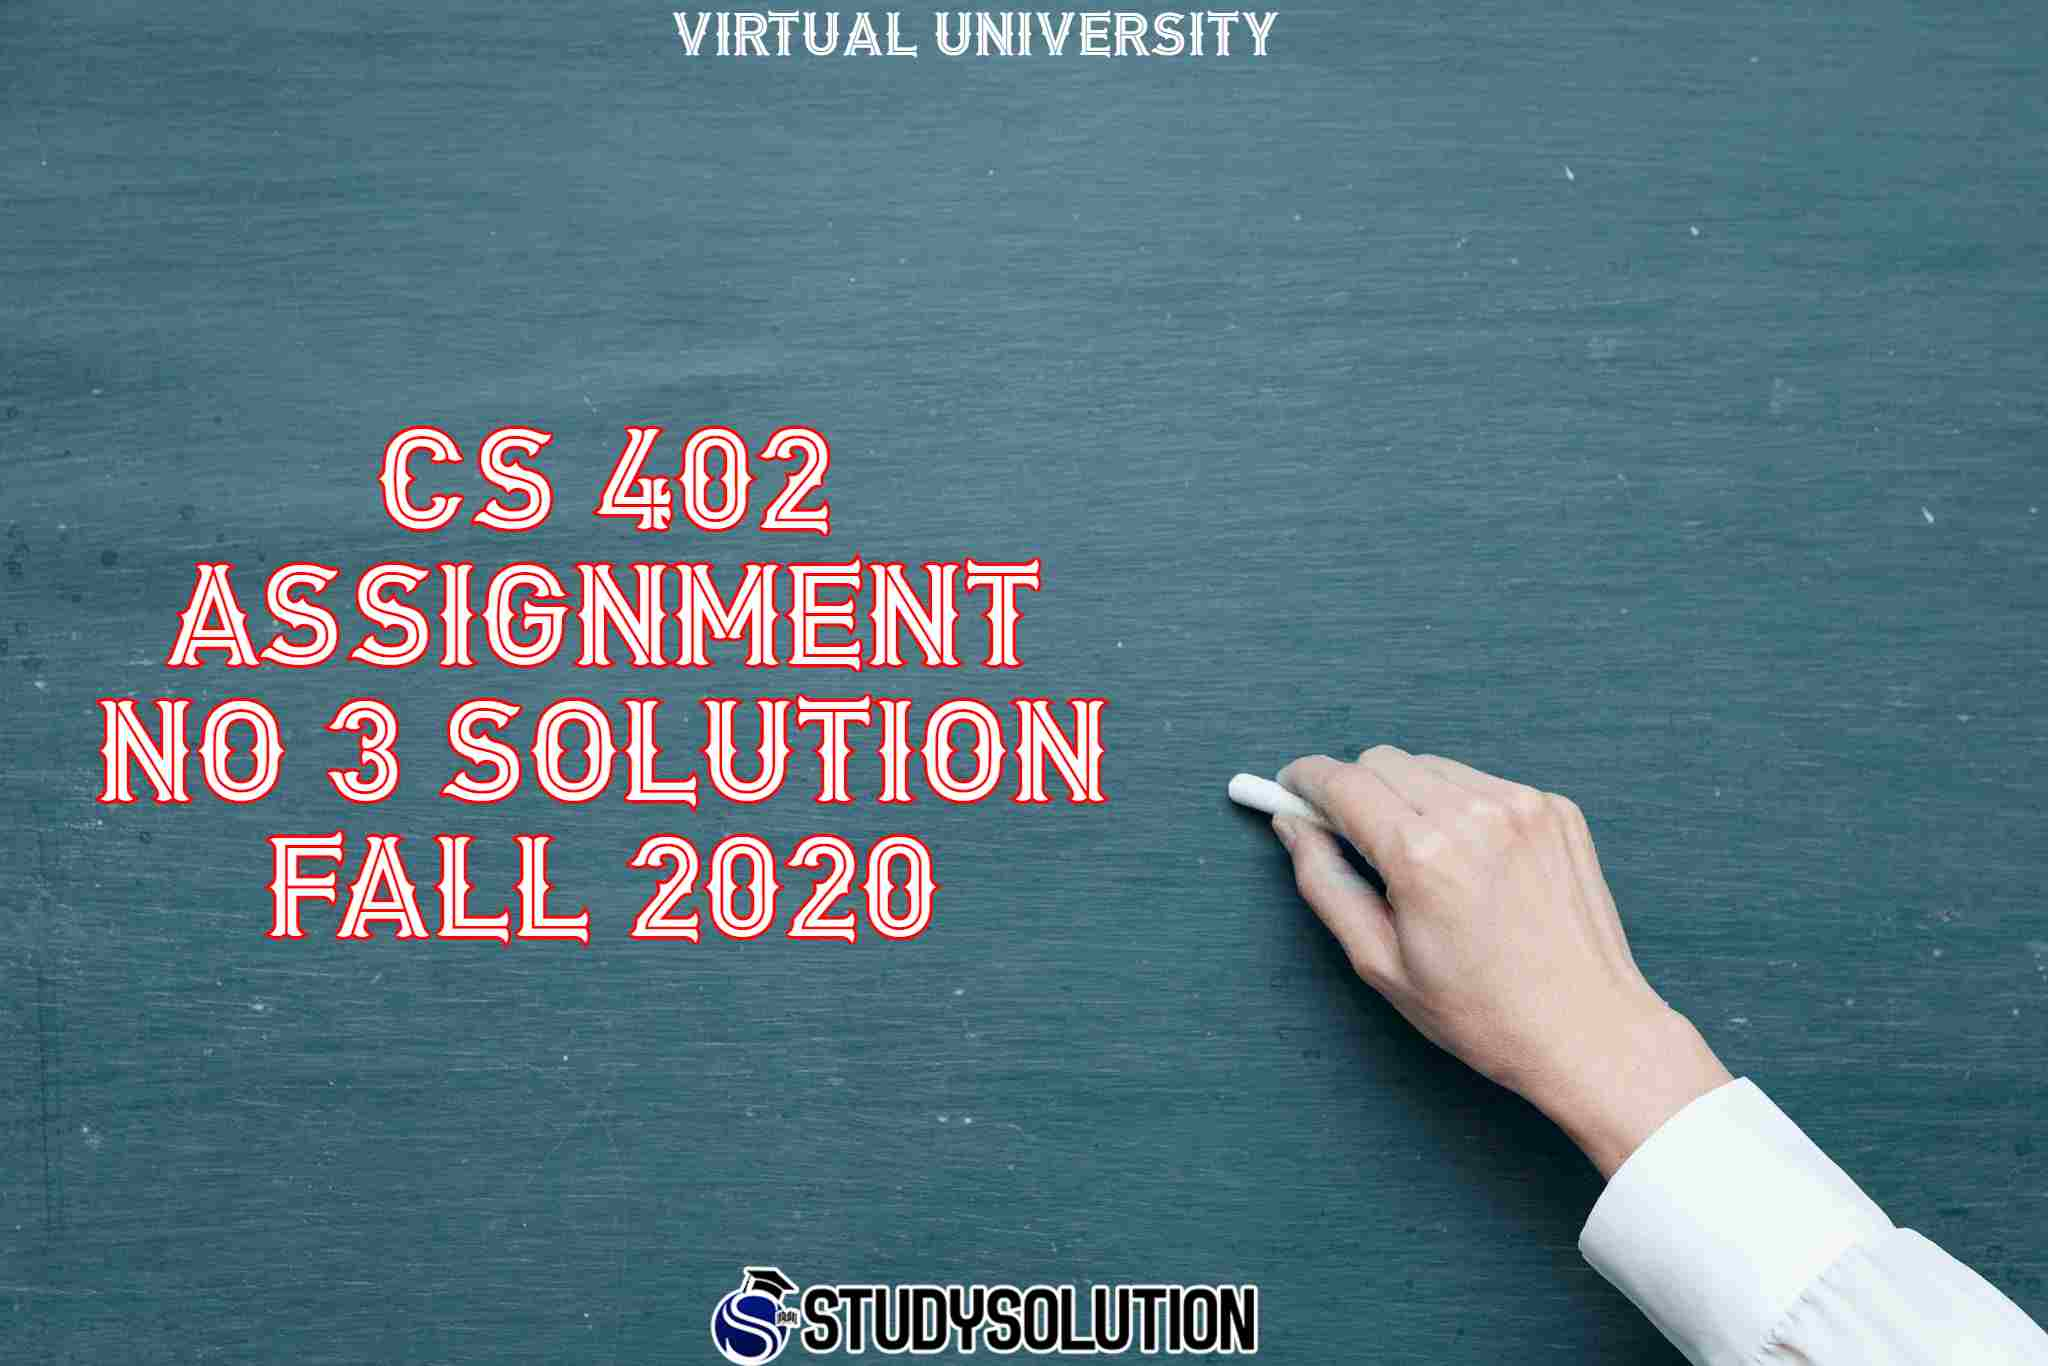 In this post, I am sharing CS 402 Assignment No 3 Solution Fall 2020